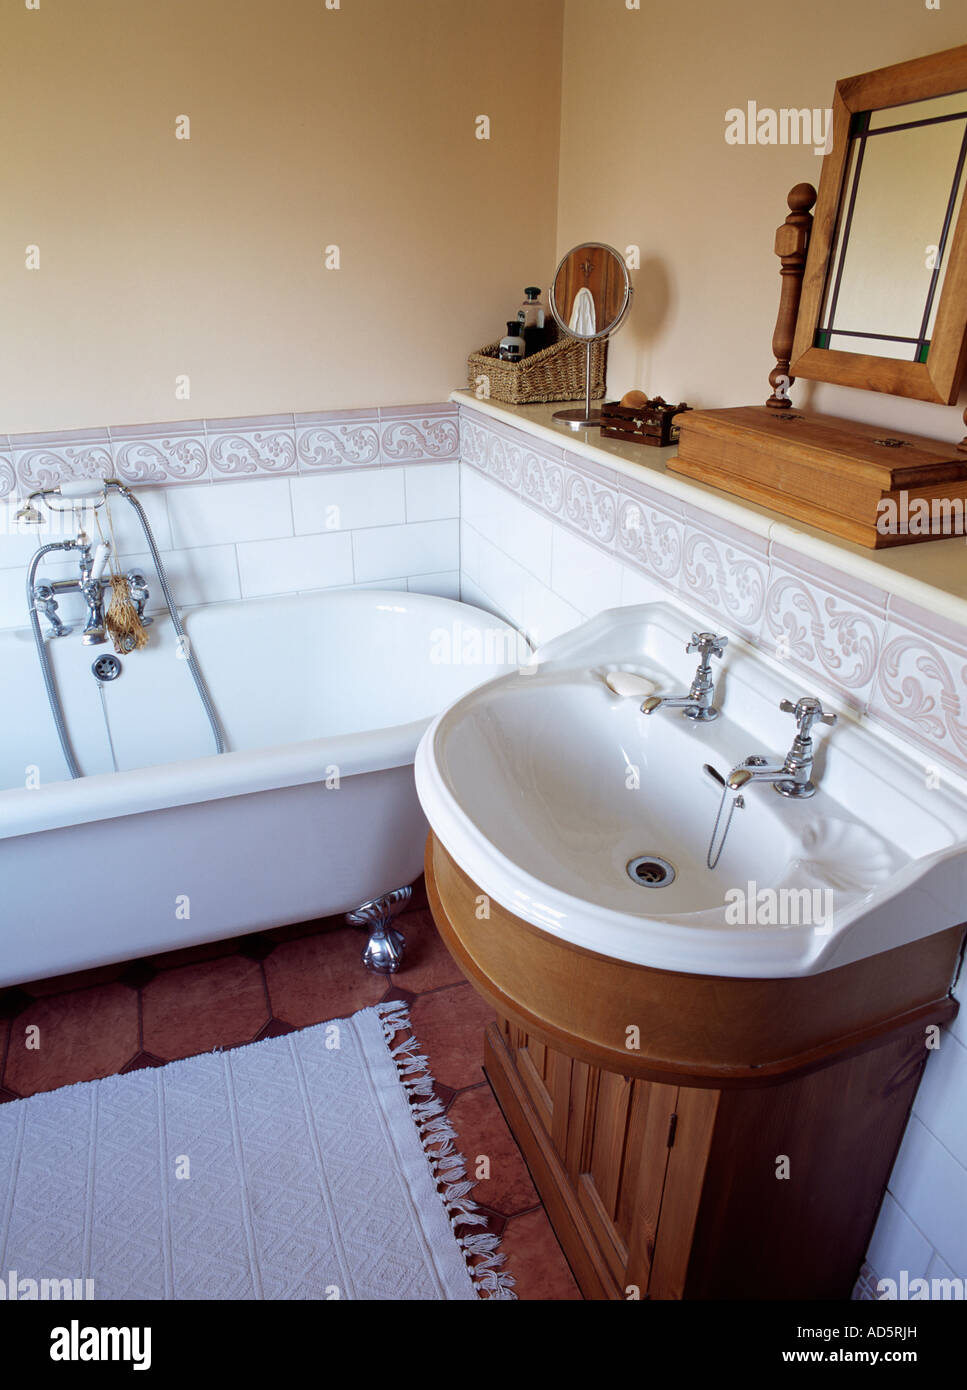 White raised pattern tiled border in bathroom with freestanding ...